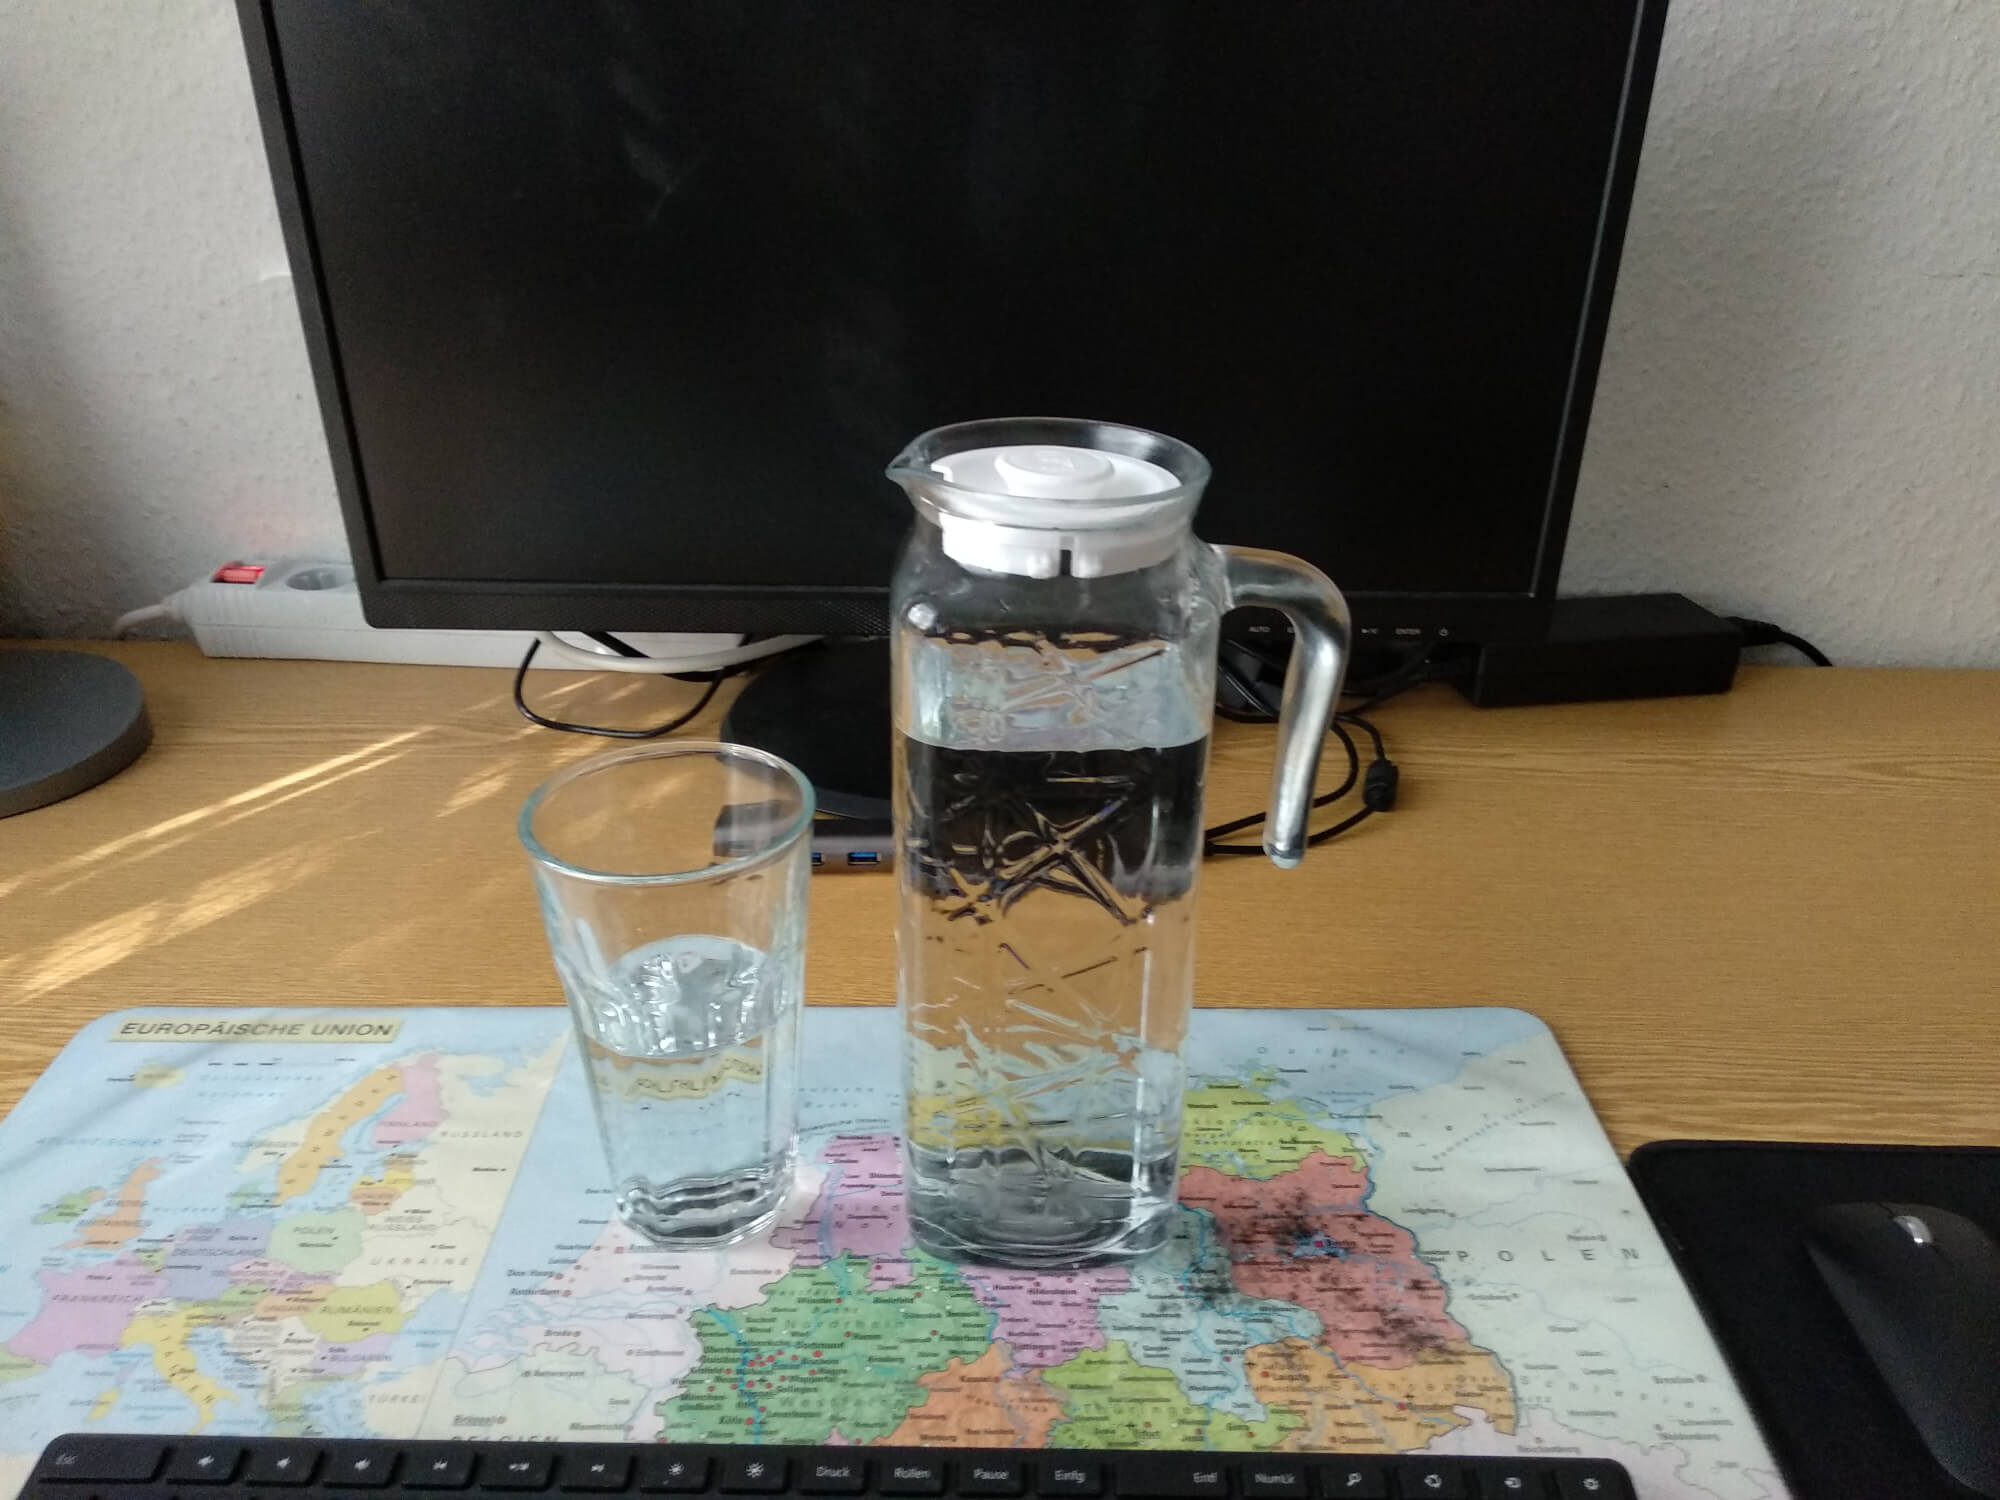 A glass jug with water and a glass with water on my desk